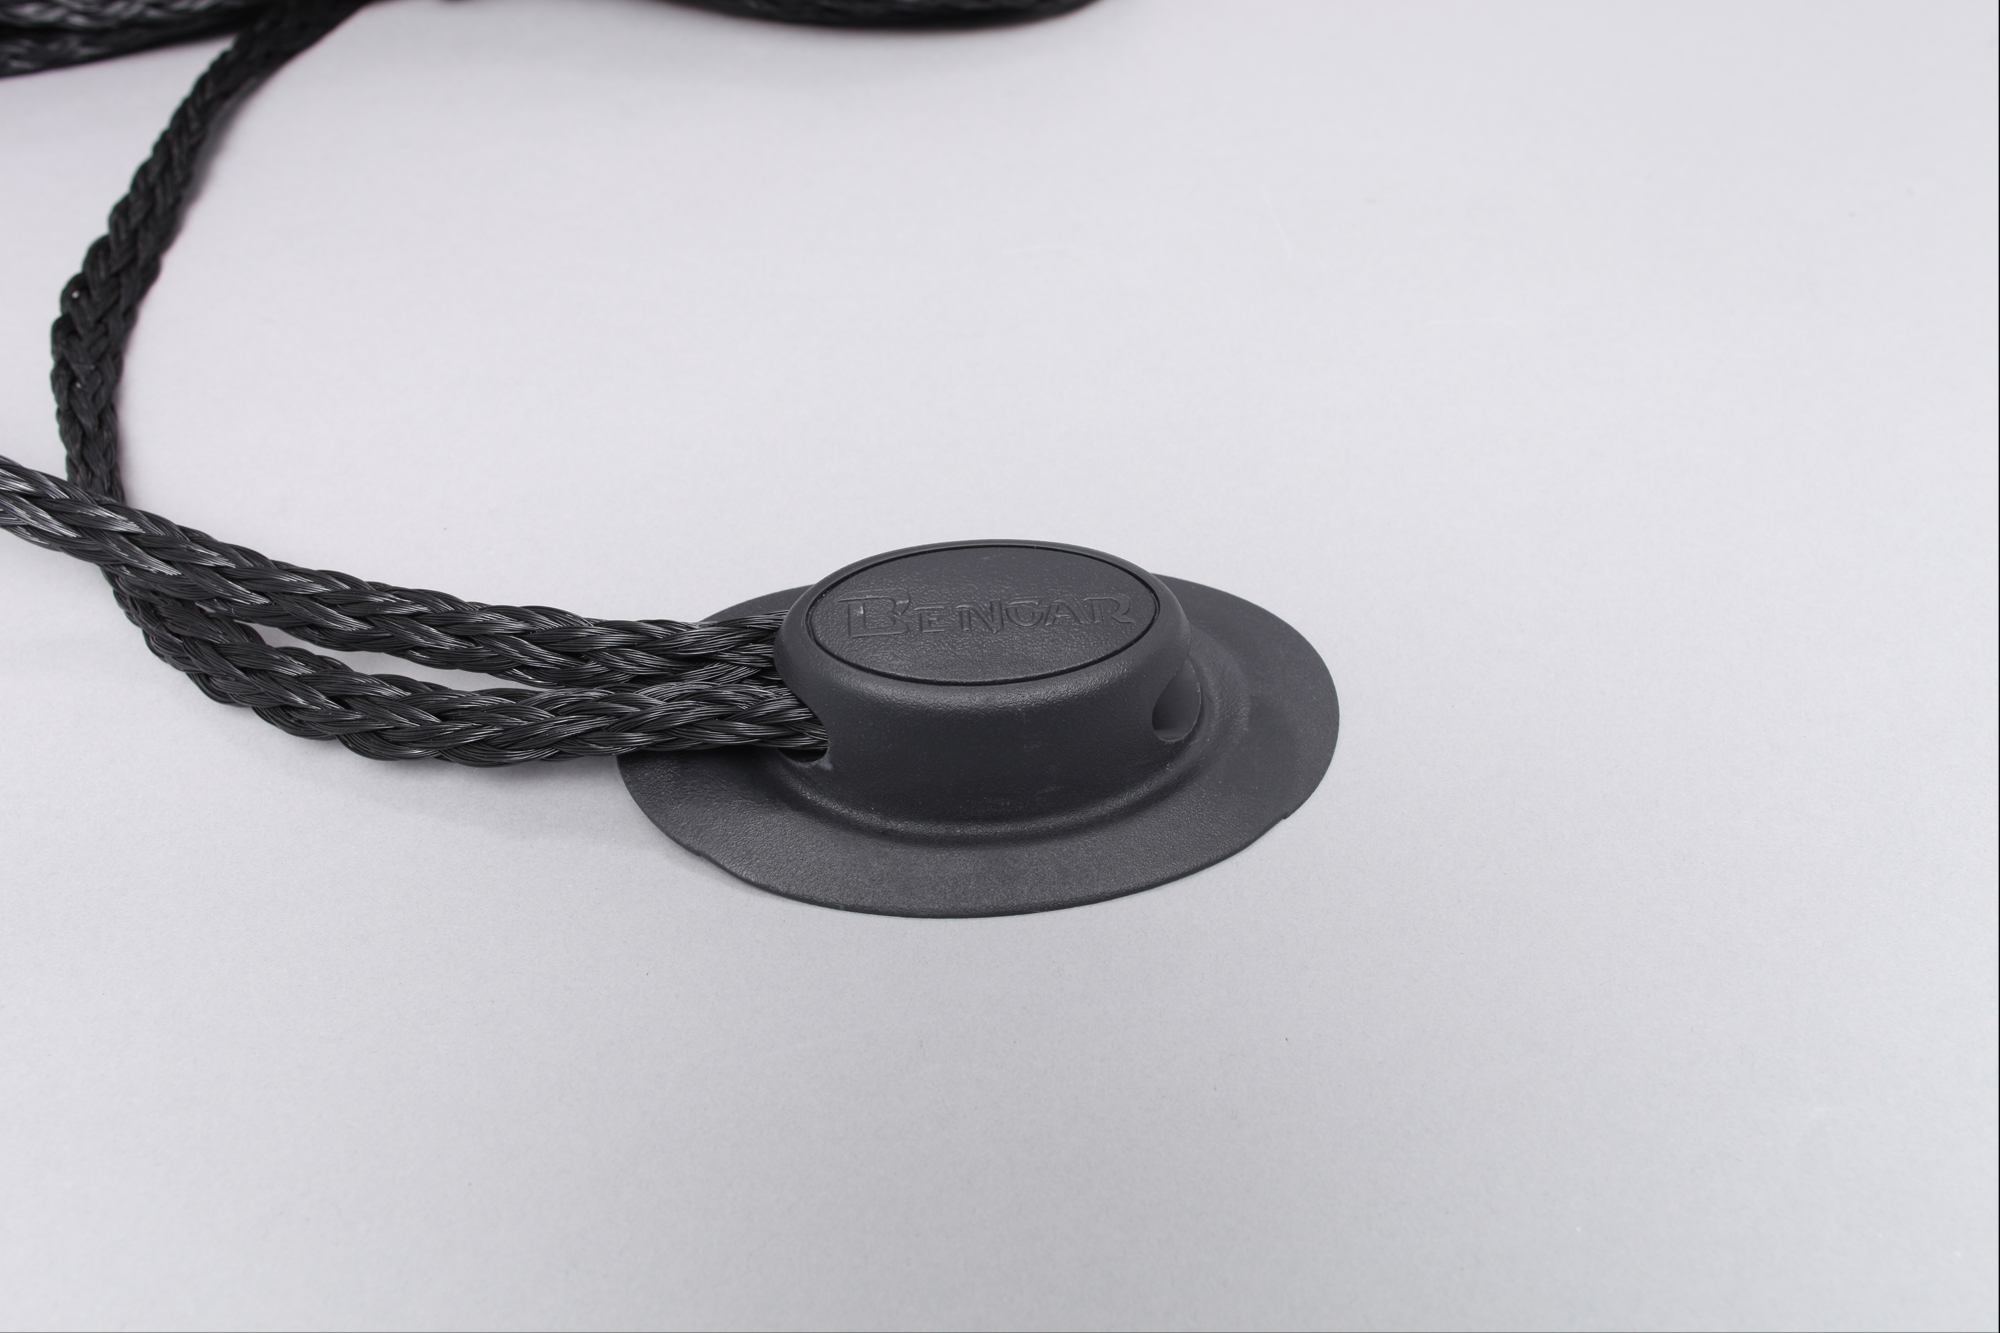 Lifeline Rope Patch Black  PVC  RIB Inflatable Boat Suitable